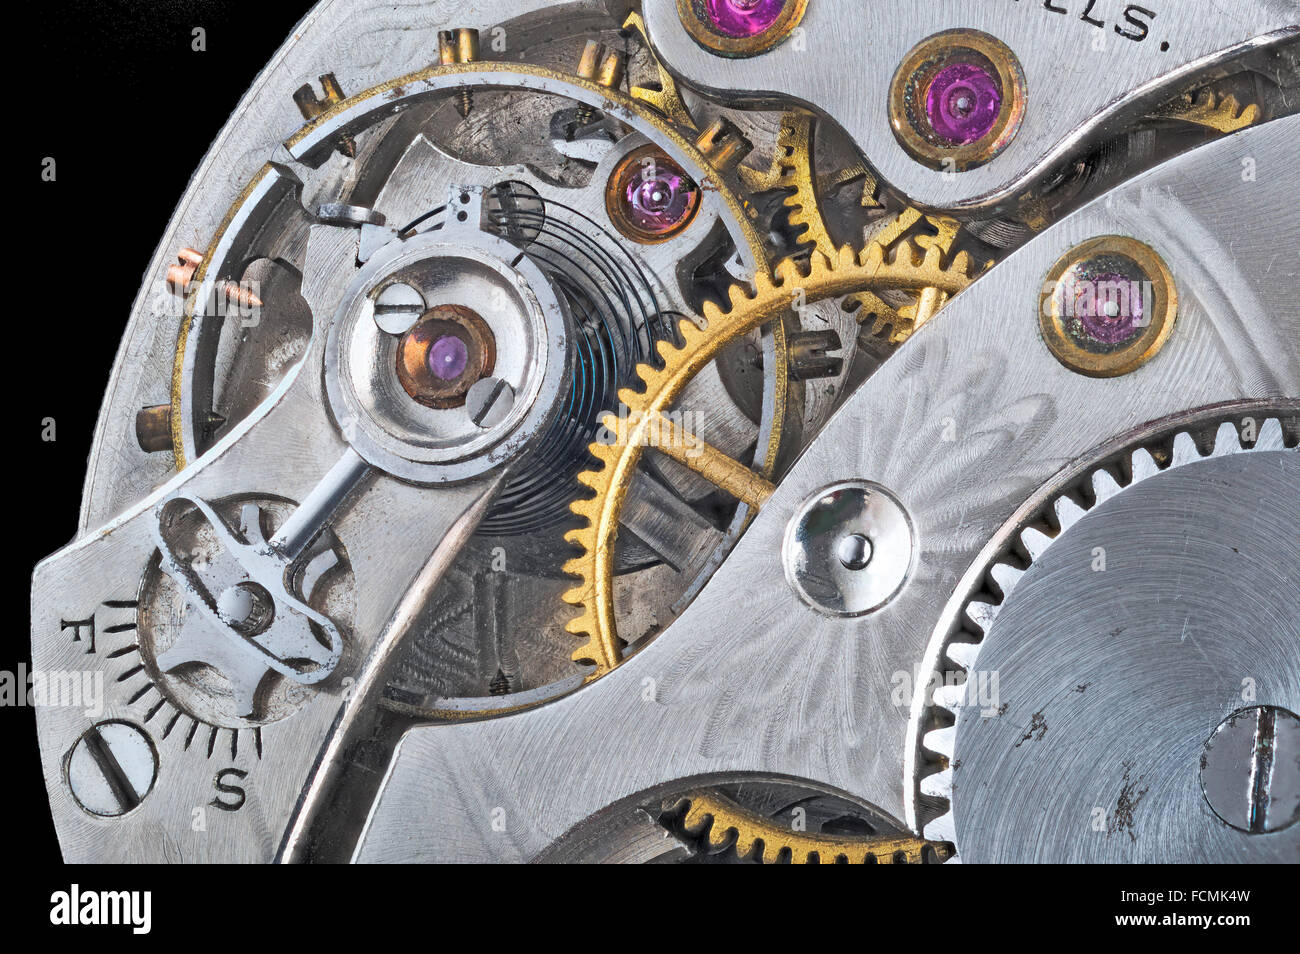 Detail of an old pocket watch - Stock Image